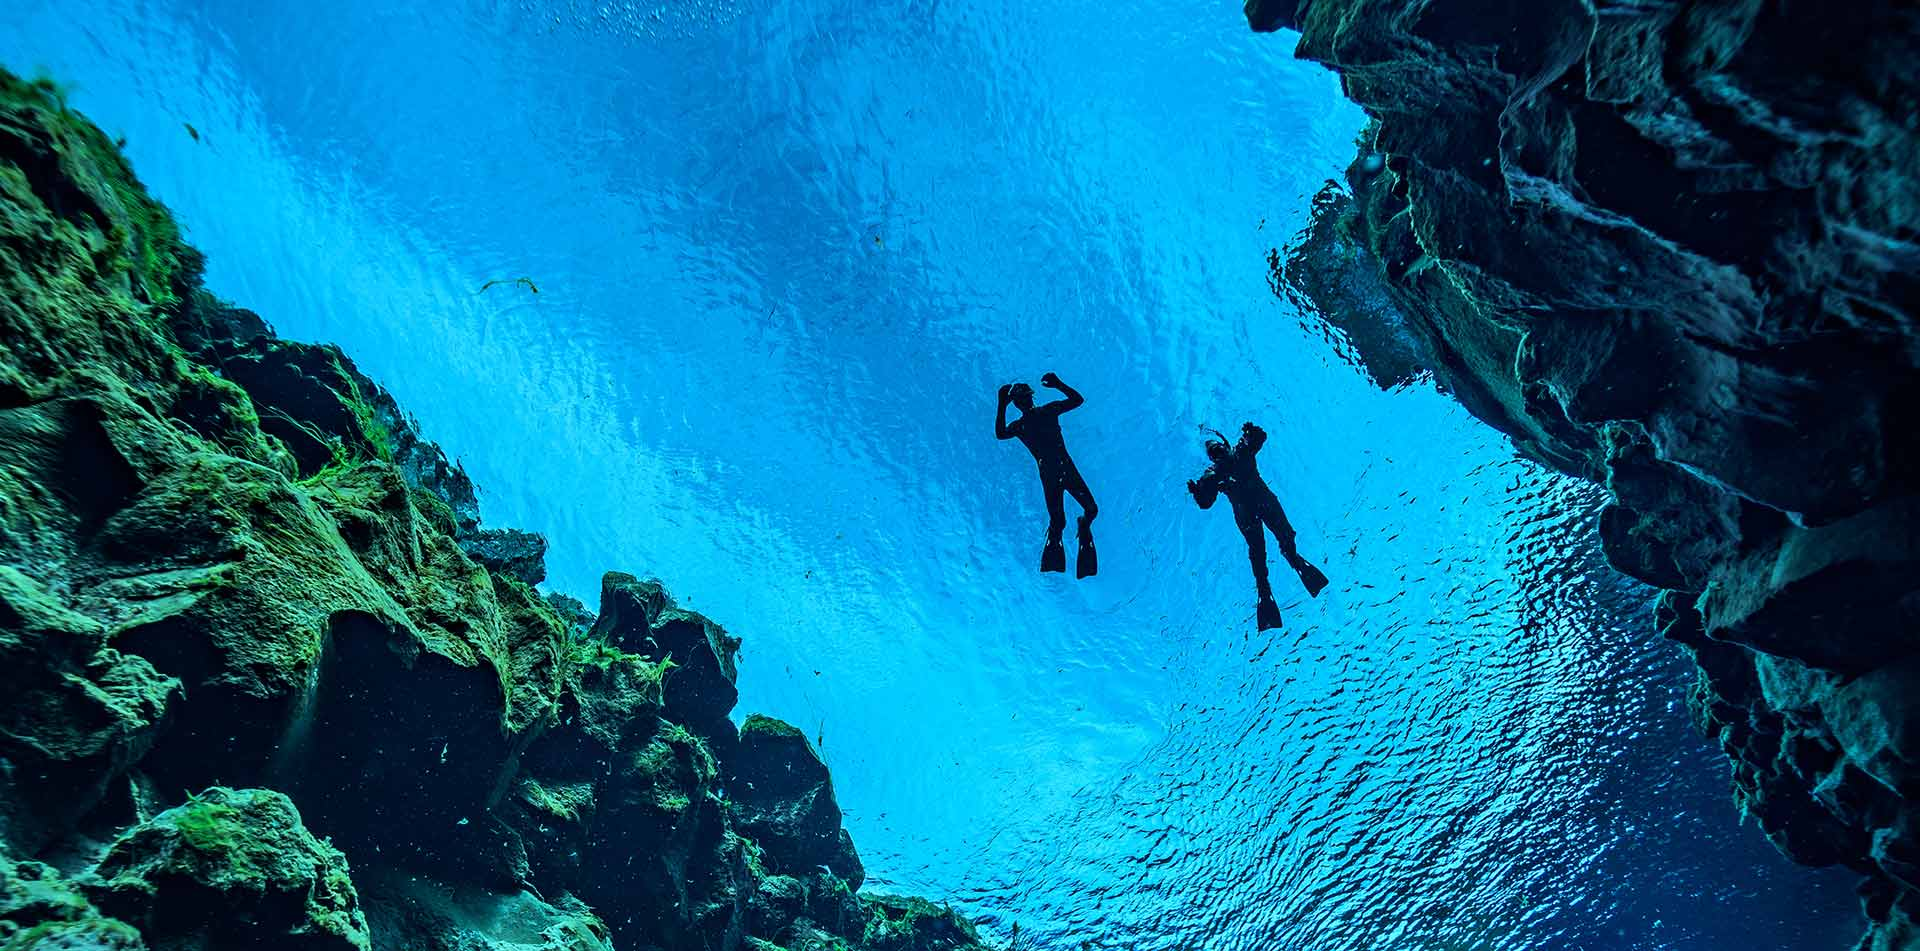 Europe Iceland Thingvellir National Park people snorkeling in blue Silfra fissure - luxury vacation destinations